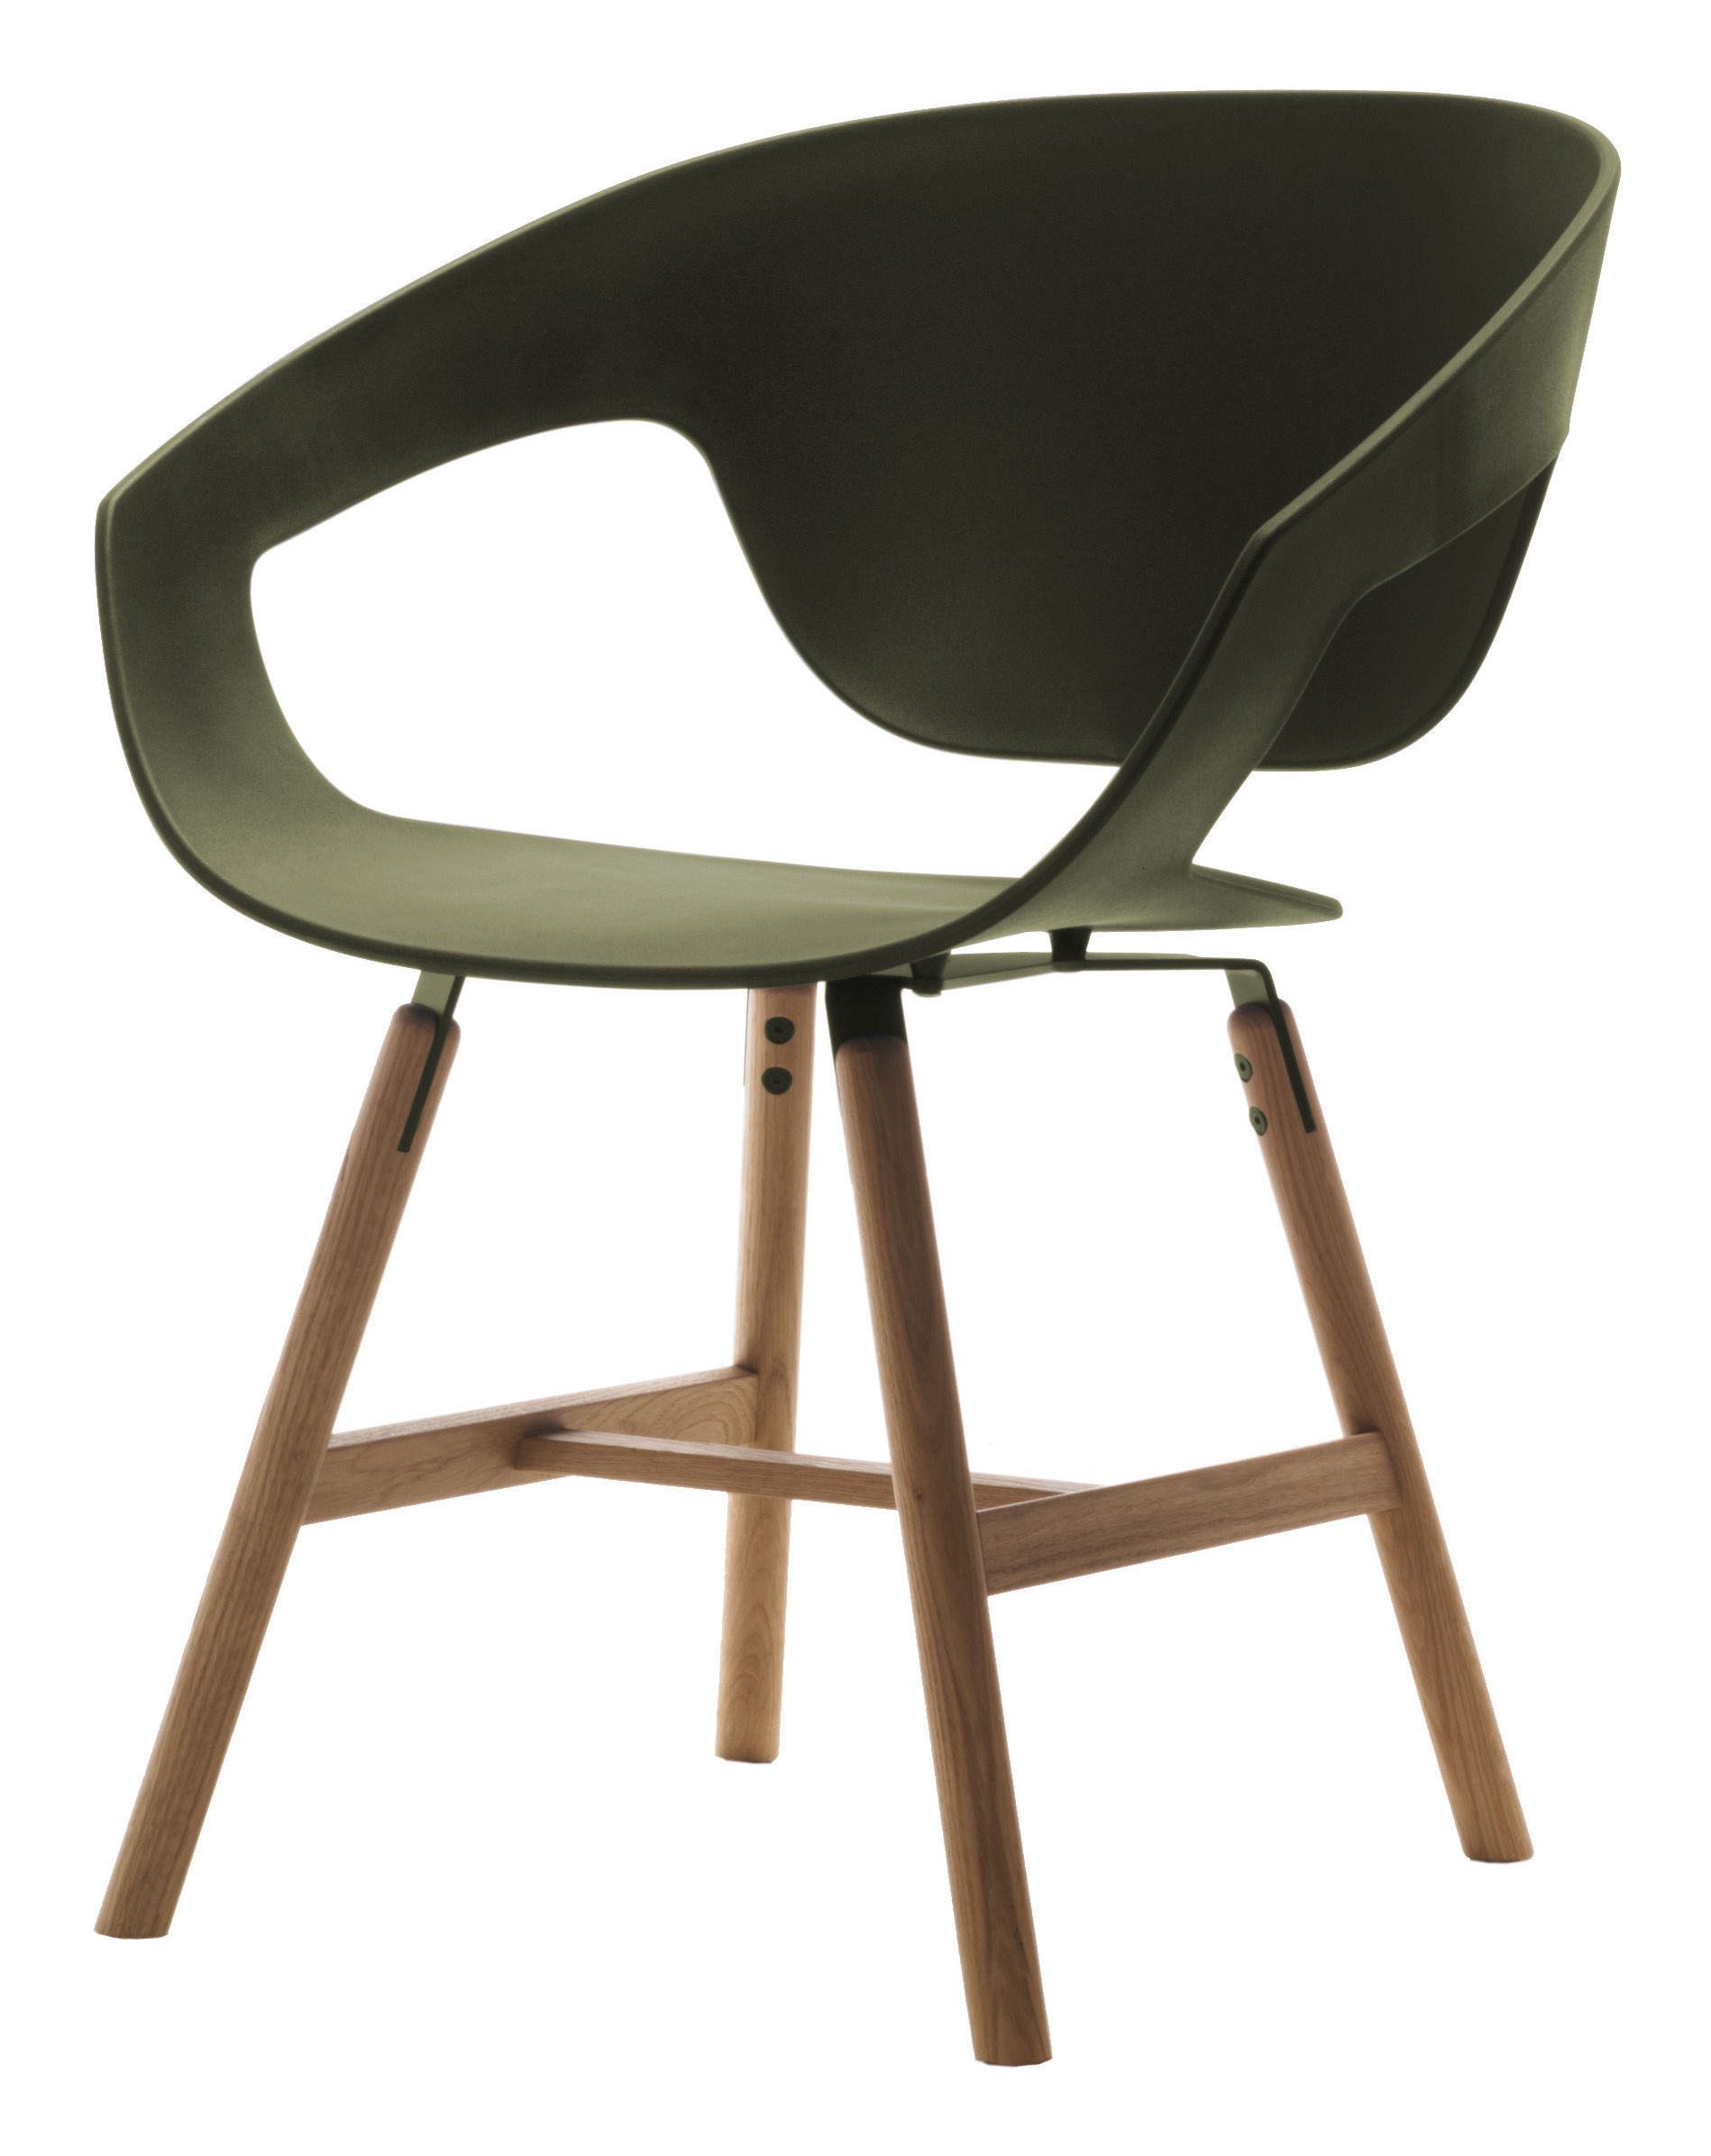 Furniture - Chairs - Vad wood Armchair - Plastic & wood legs by Casamania - Green - Polypropylene, Solid wood